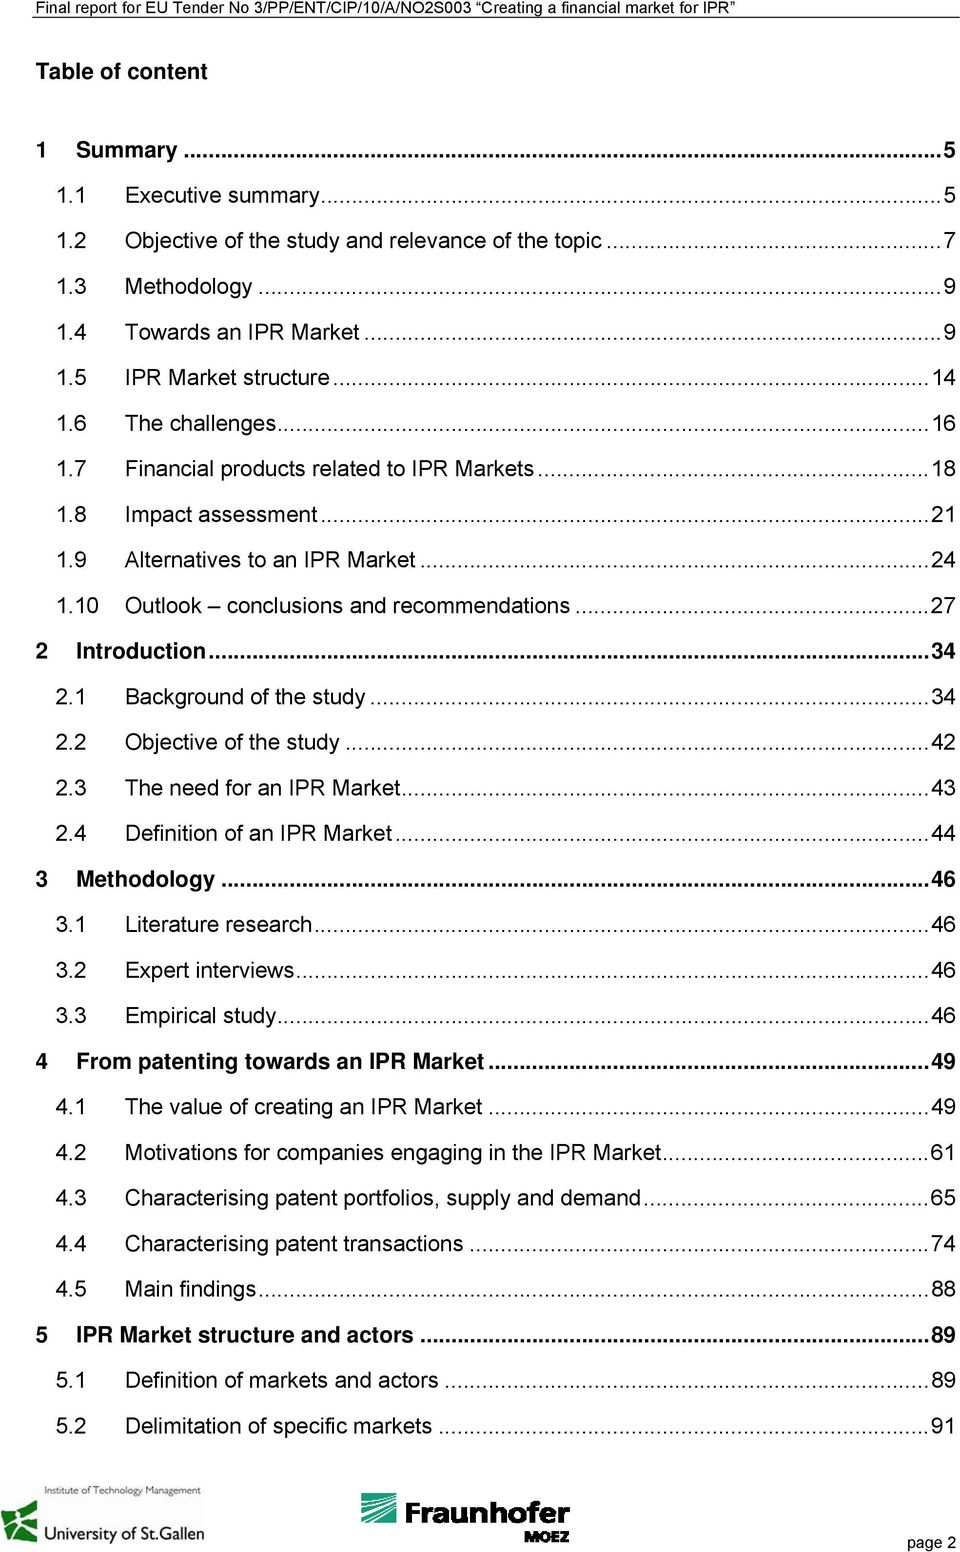 .. 27 2 Introduction... 34 2.1 Background of the study... 34 2.2 Objective of the study... 42 2.3 The need for an IPR Market... 43 2.4 Definition of an IPR Market... 44 3 Methodology... 46 3.